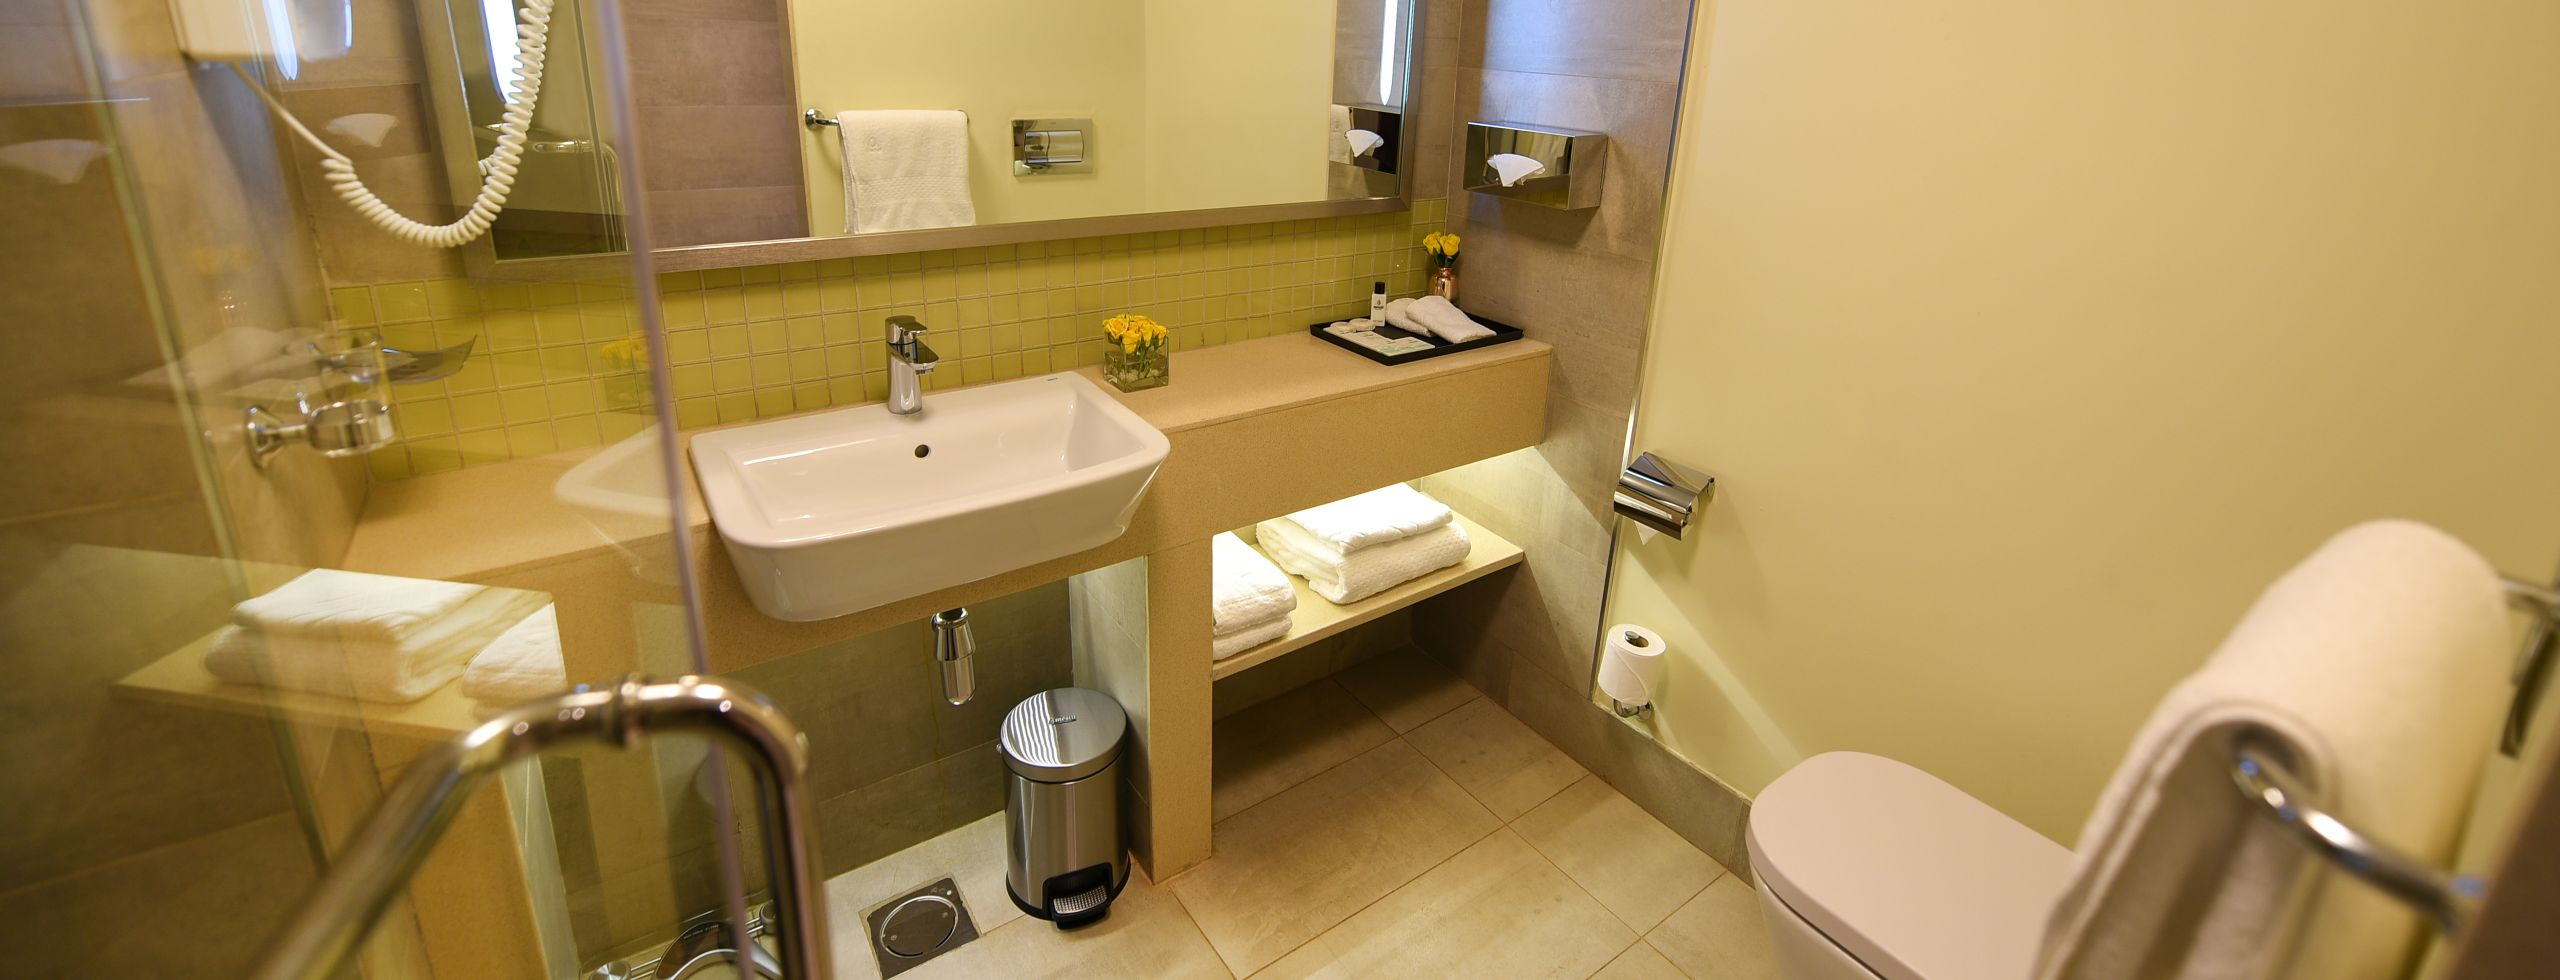 Accommodation Executive room 2 ensuite